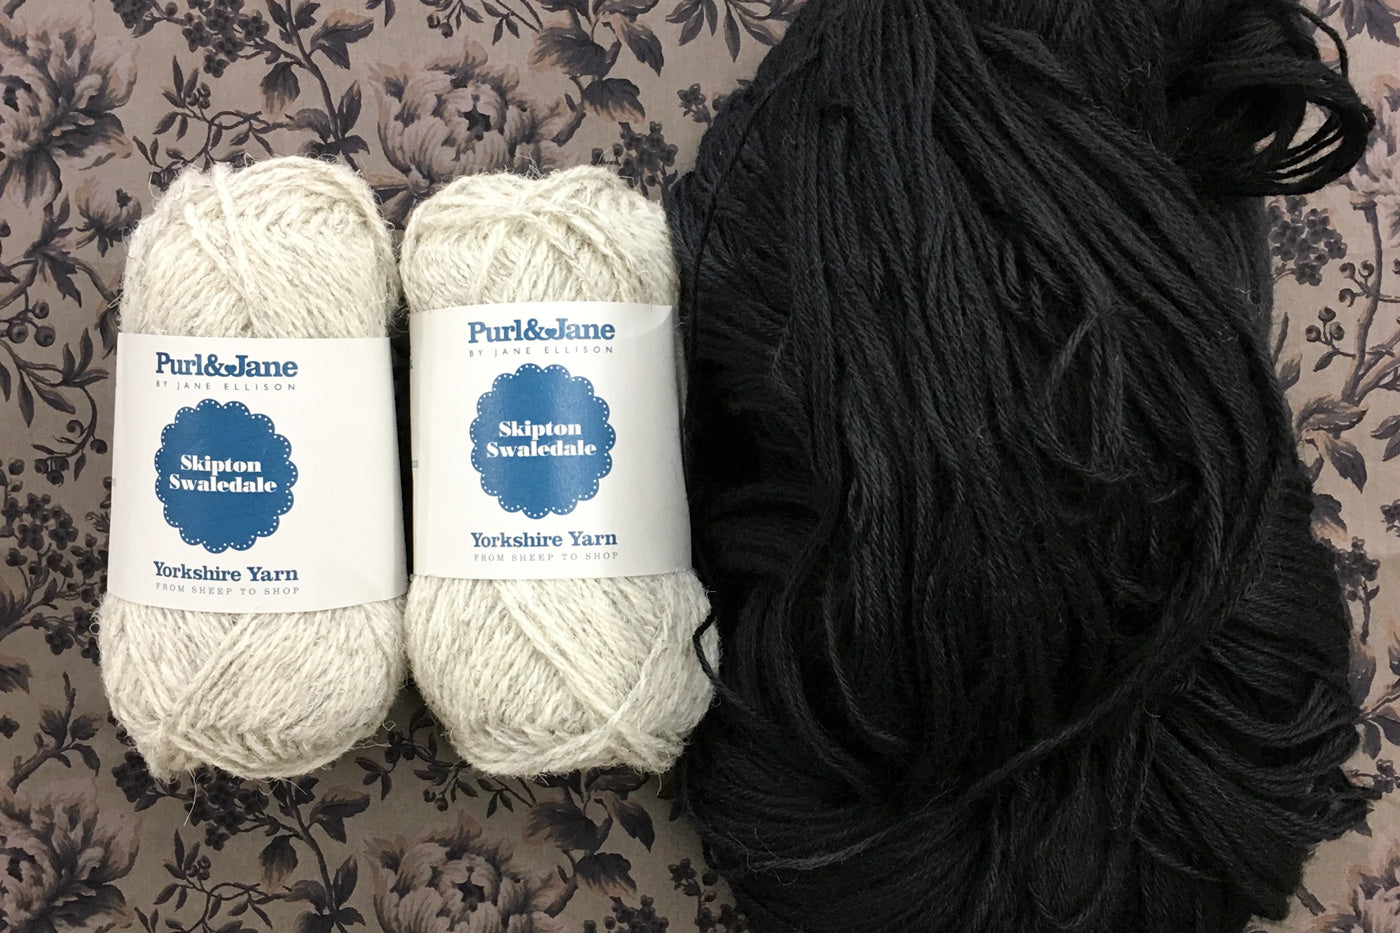 Jaime's Yarn from Purl and Jane